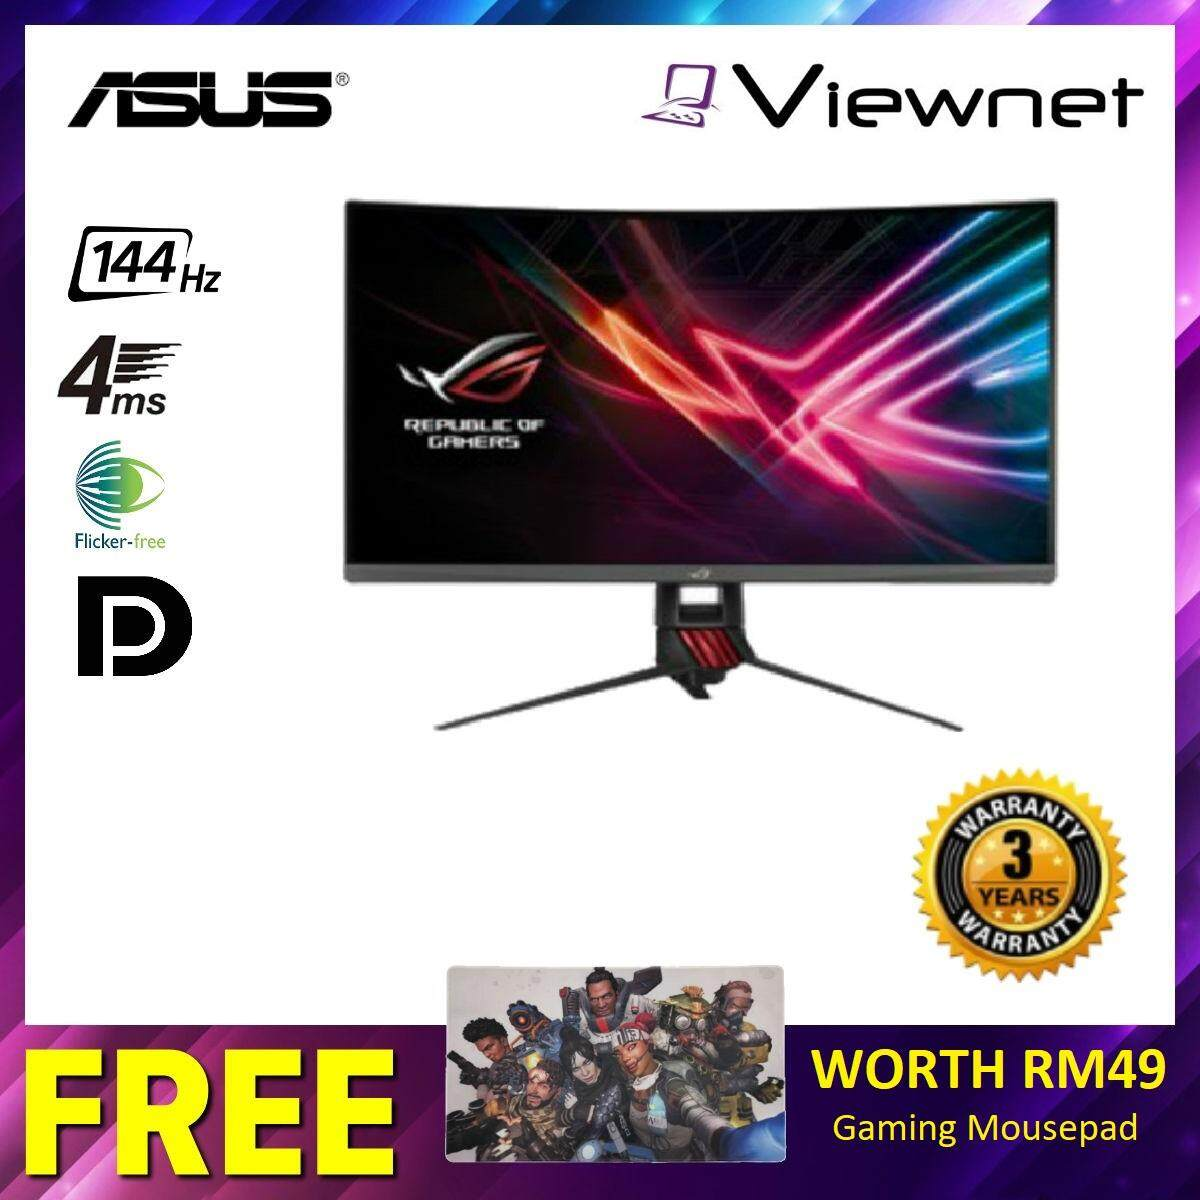 Asus ROG Strix XG32VQ 31.5'' 144Hz 4ms Gaming Curve Monitor With HDMI & DisplayPort